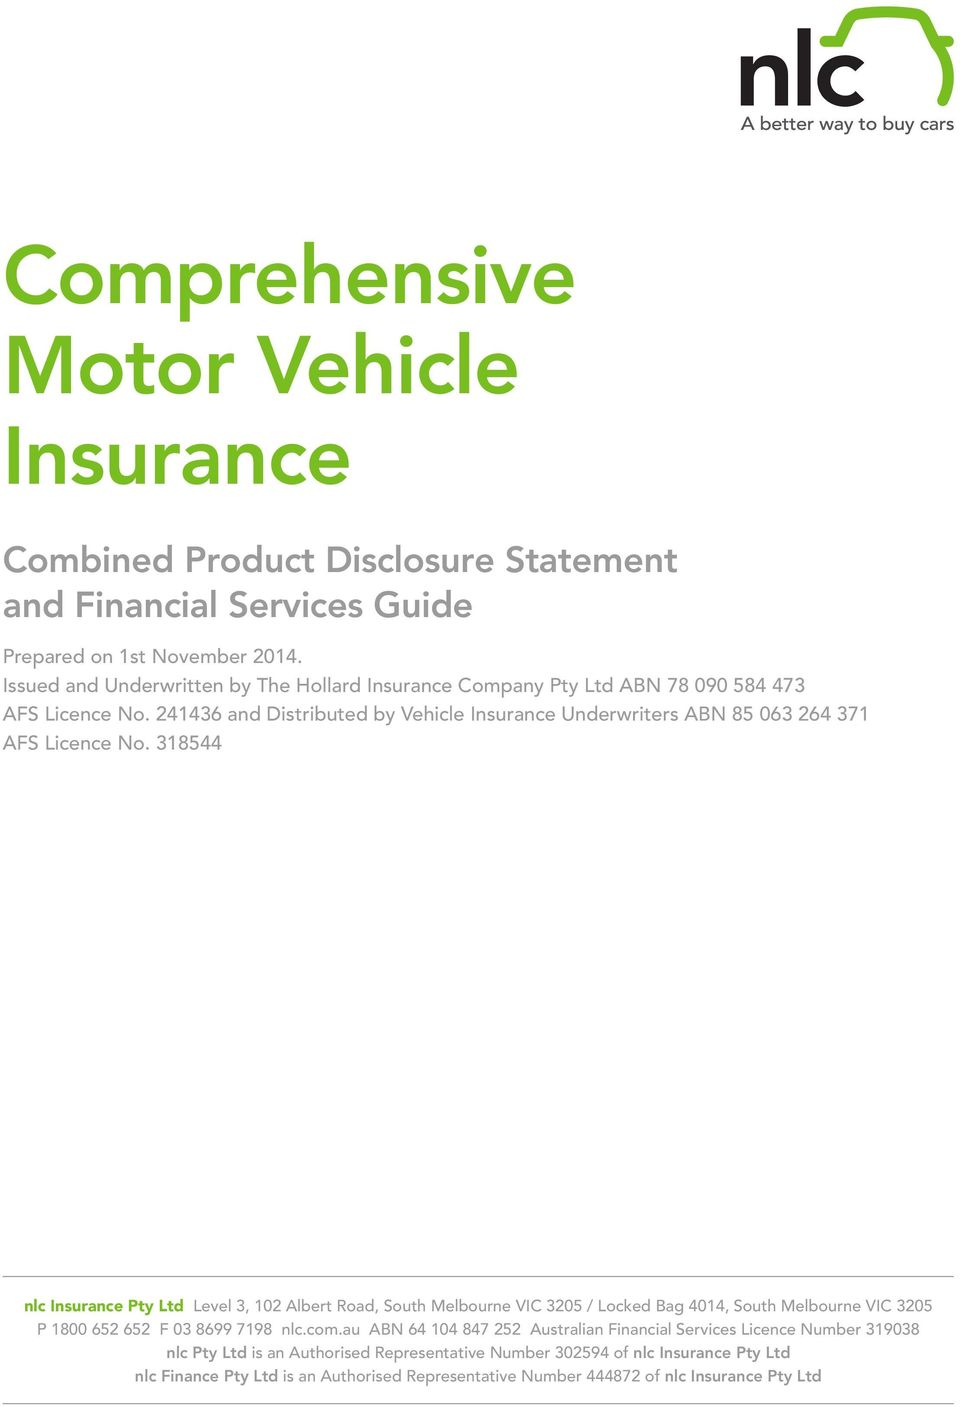 241436 and Distributed by Vehicle Insurance Underwriters ABN 85 063 264 371 AFS Licence No.